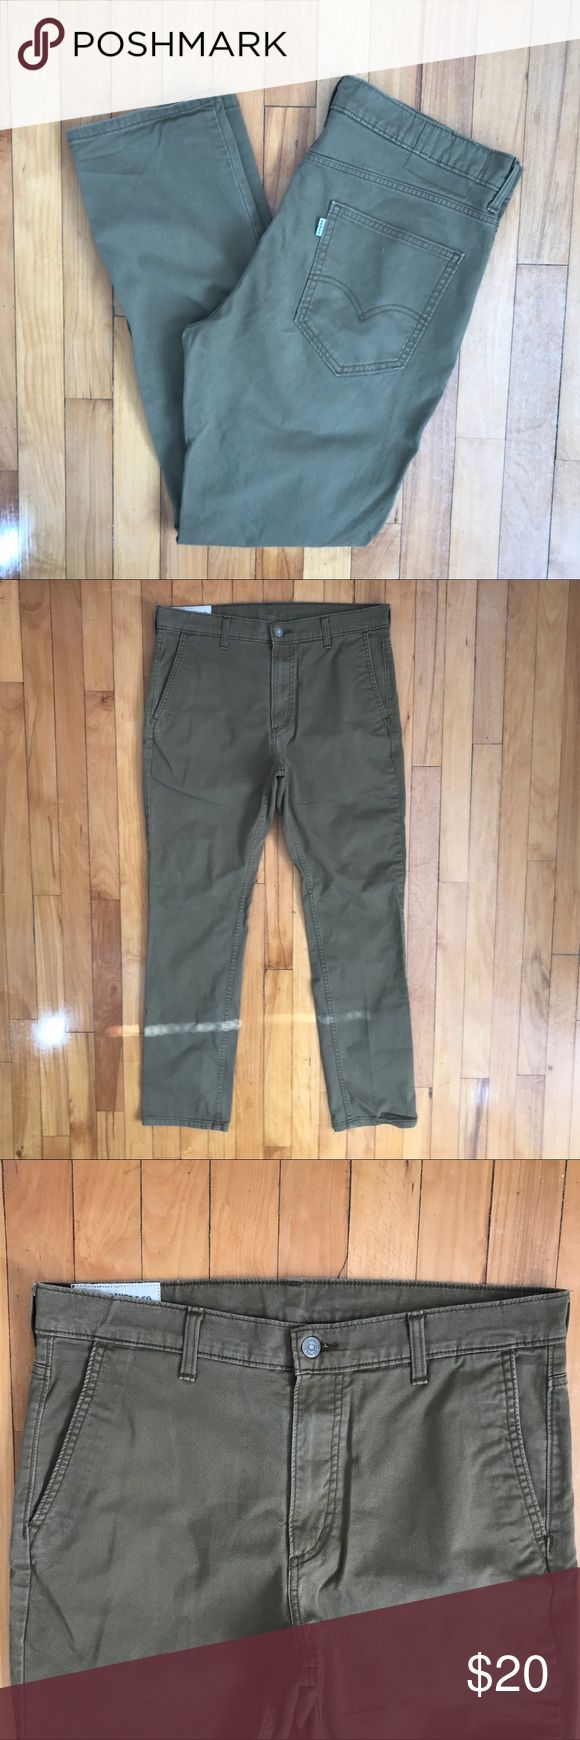 Men's Levi's khaki skinnies Very good condition. 34x32. {PP} Levi's Pants Chinos & Khakis